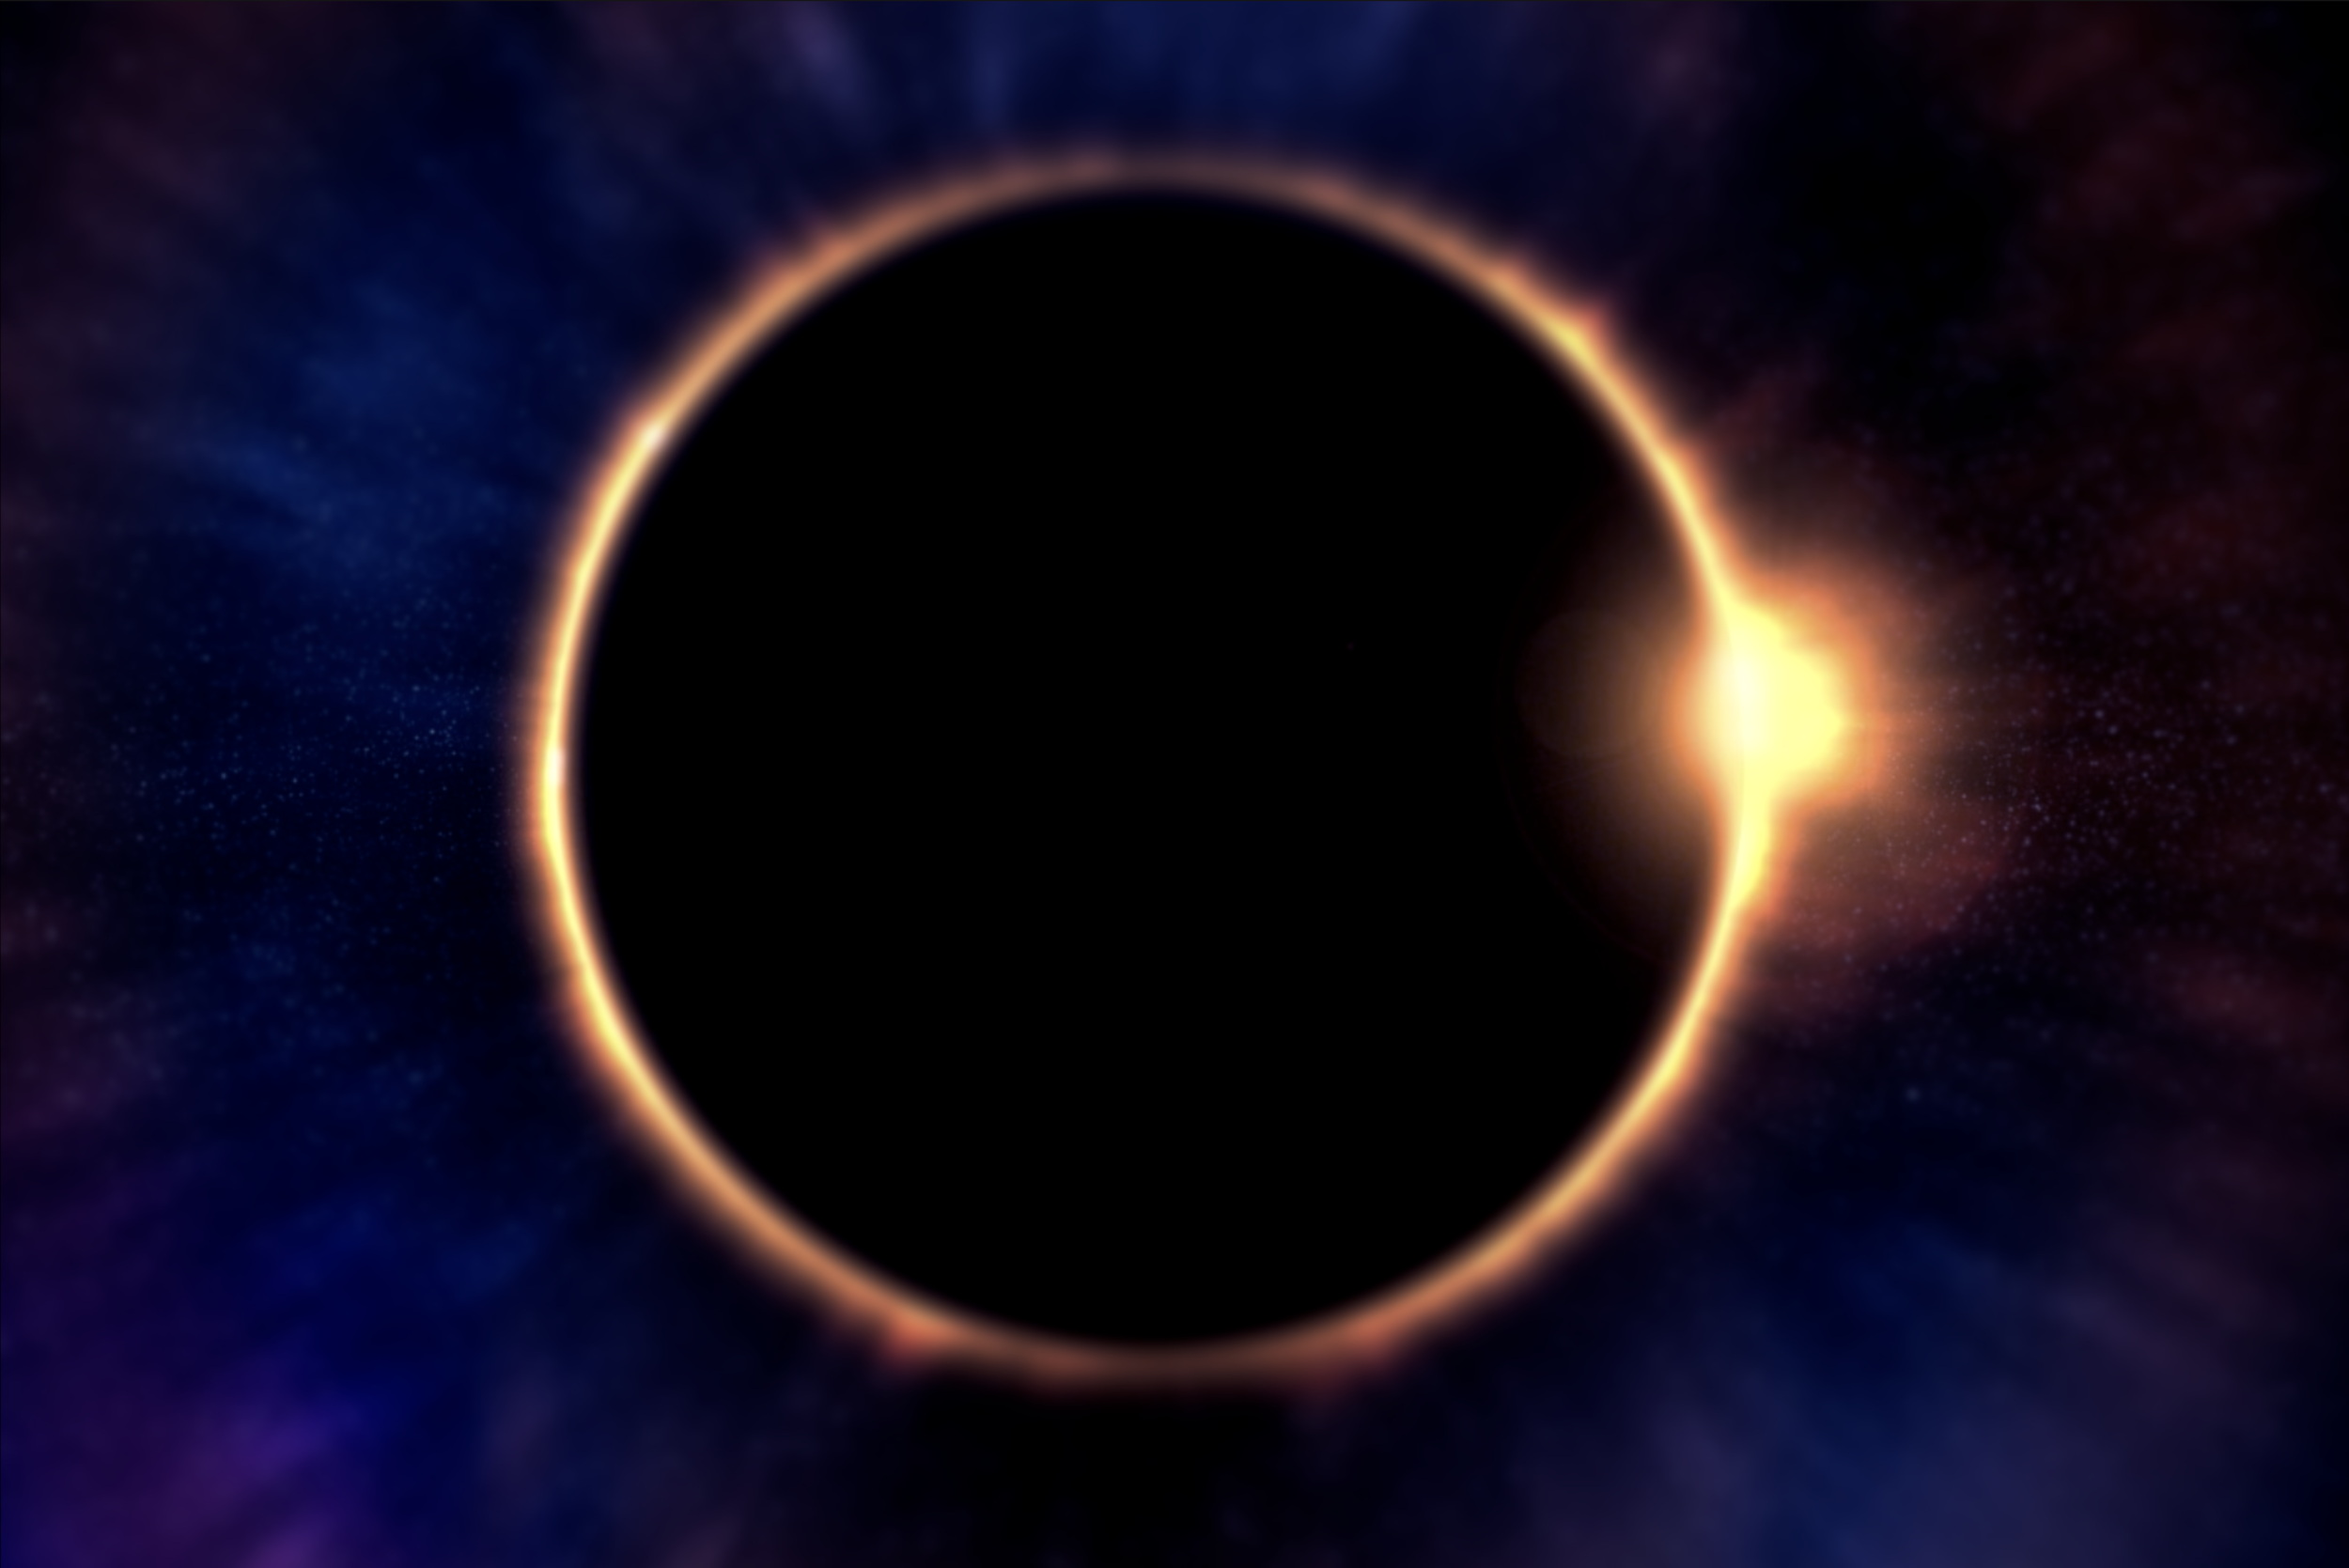 Image: The eclipse as viewed from Earth's capital, Ulm.